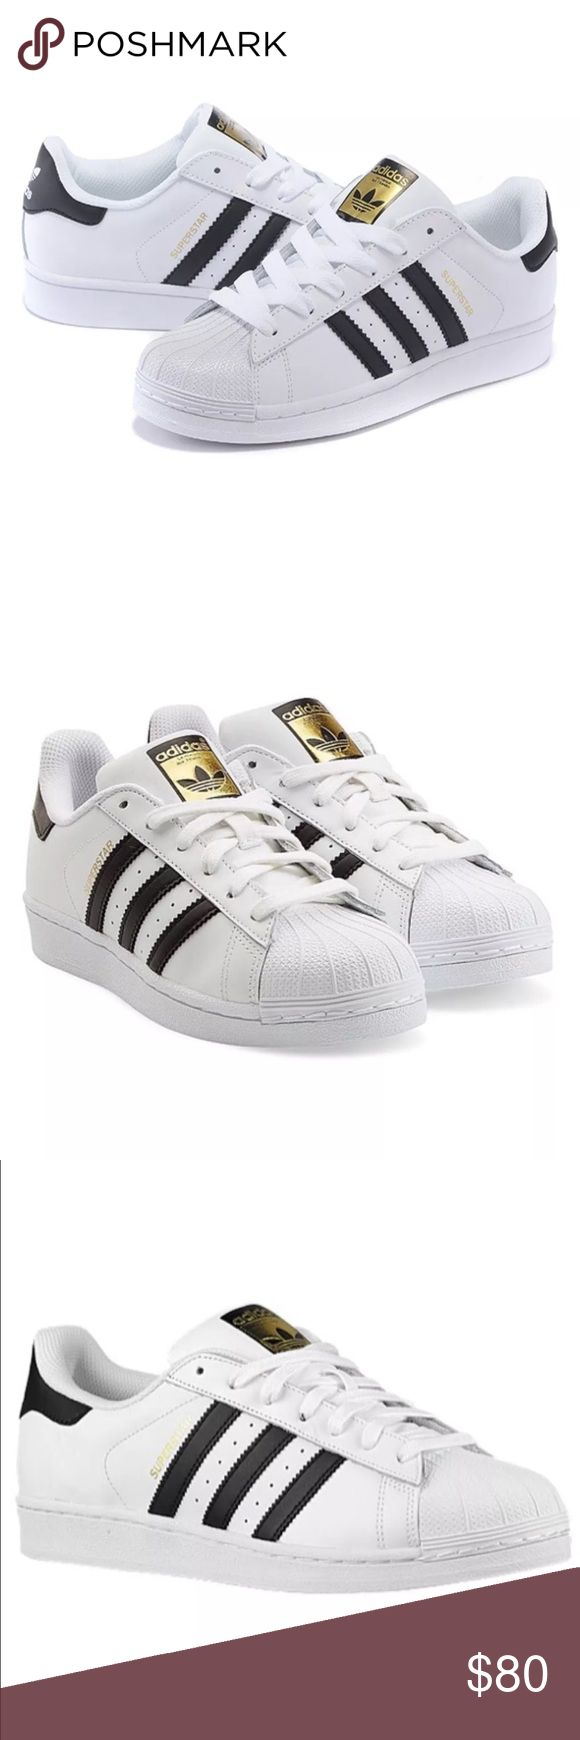 Sold on eBay Cute and stylish Brand new 2016 style Adidas Superstar  Original Black, White \u0026 Gold stripe sneakers size US women\u0027s 6.5-7.